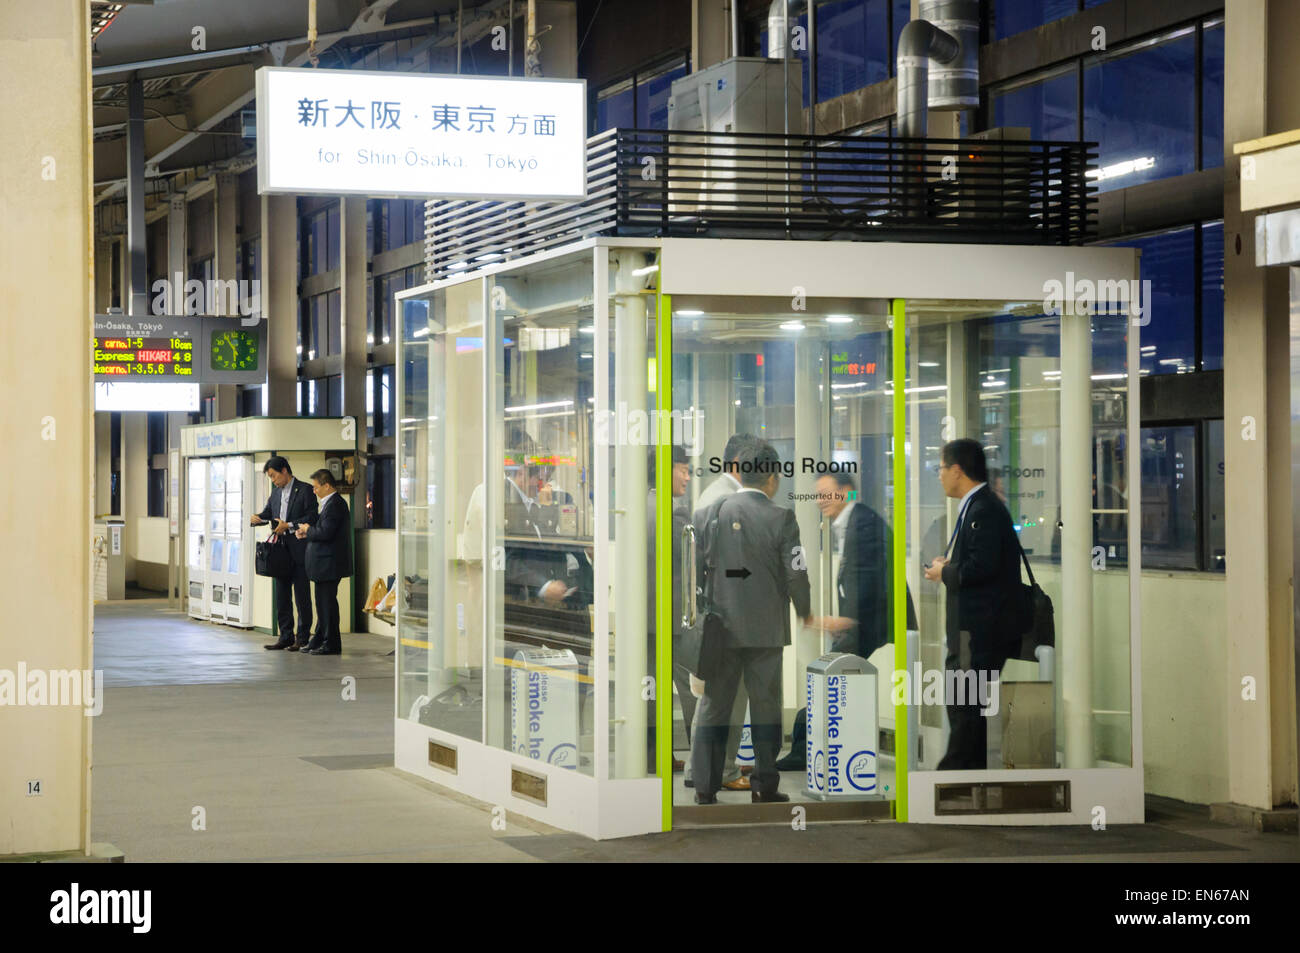 Glass Box With Ventilation System For Smokers Allowing